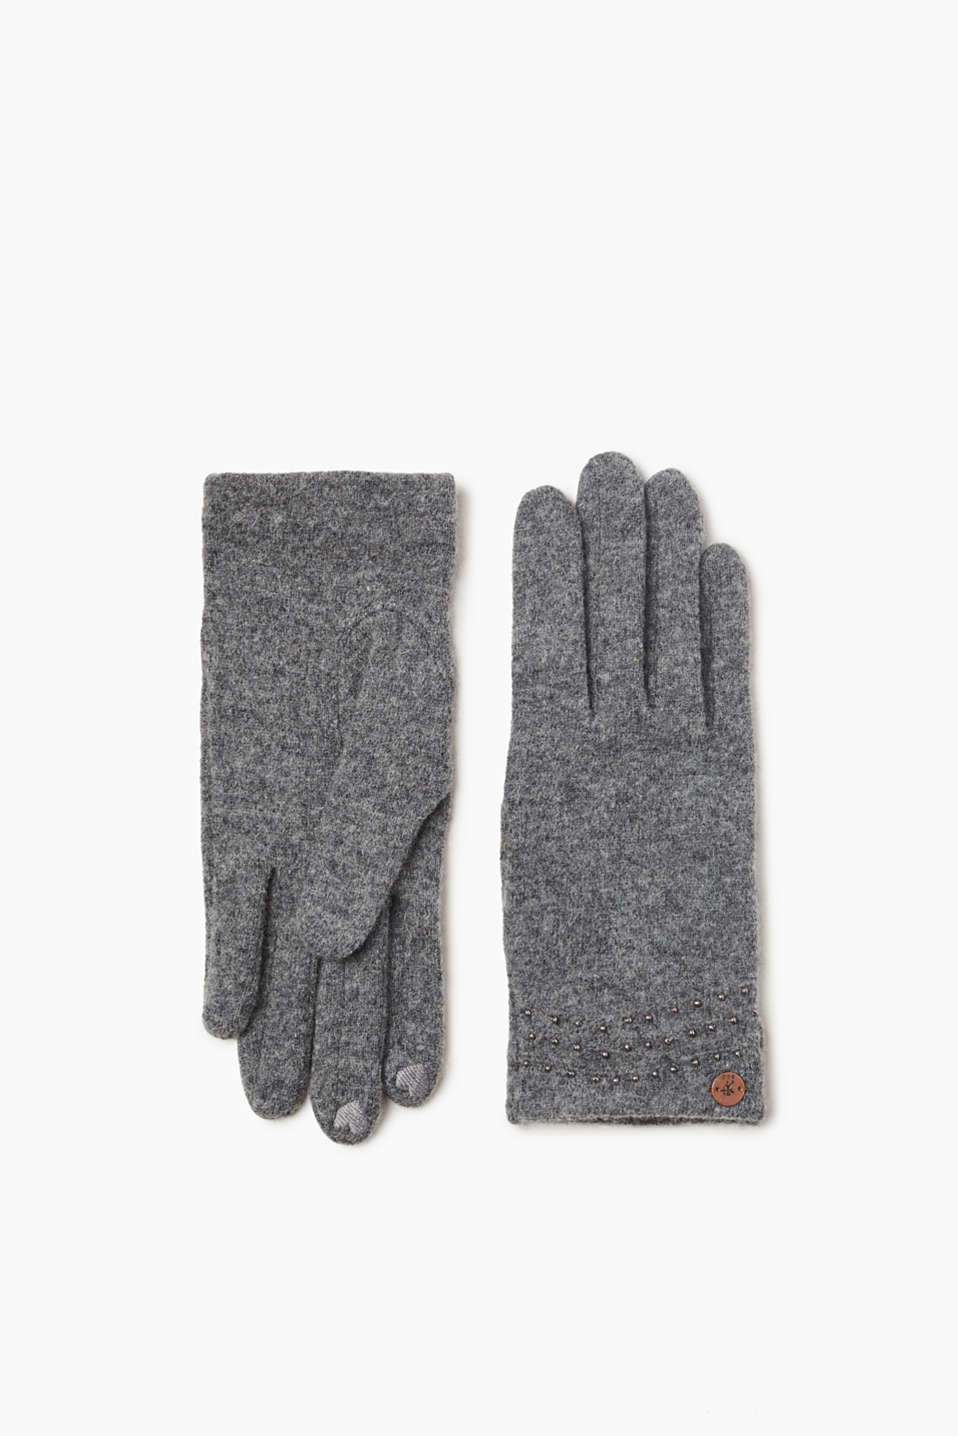 Fine beading makes these gloves with a percentage of soft wool an elegant winter accessory.